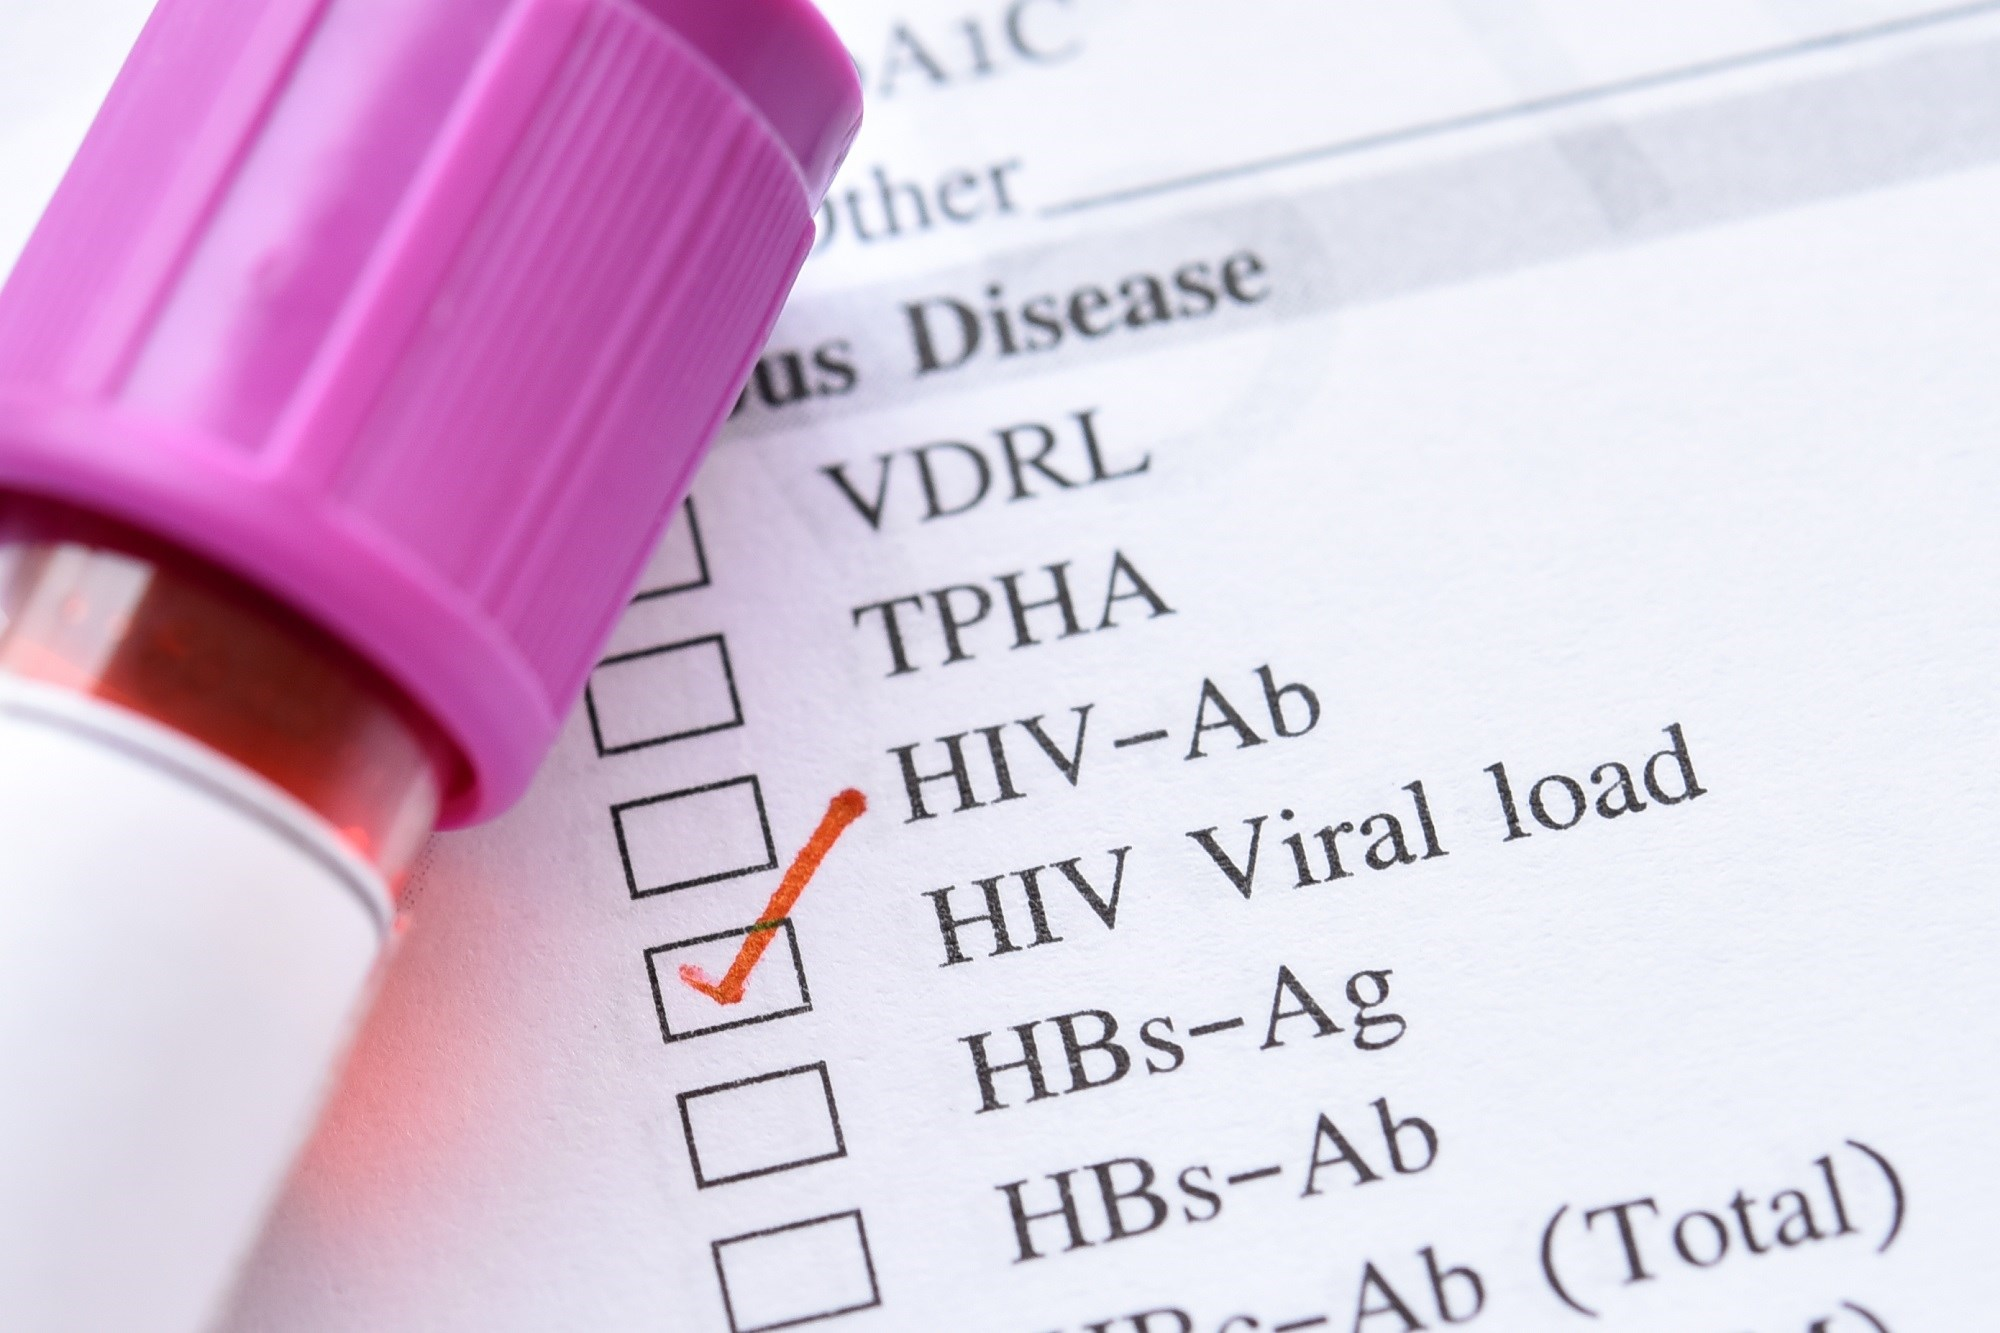 Investigators found that early HIV infection, represented by stage 0, is associated with viral loads higher than those in infections diagnosed in later stages of the disease.